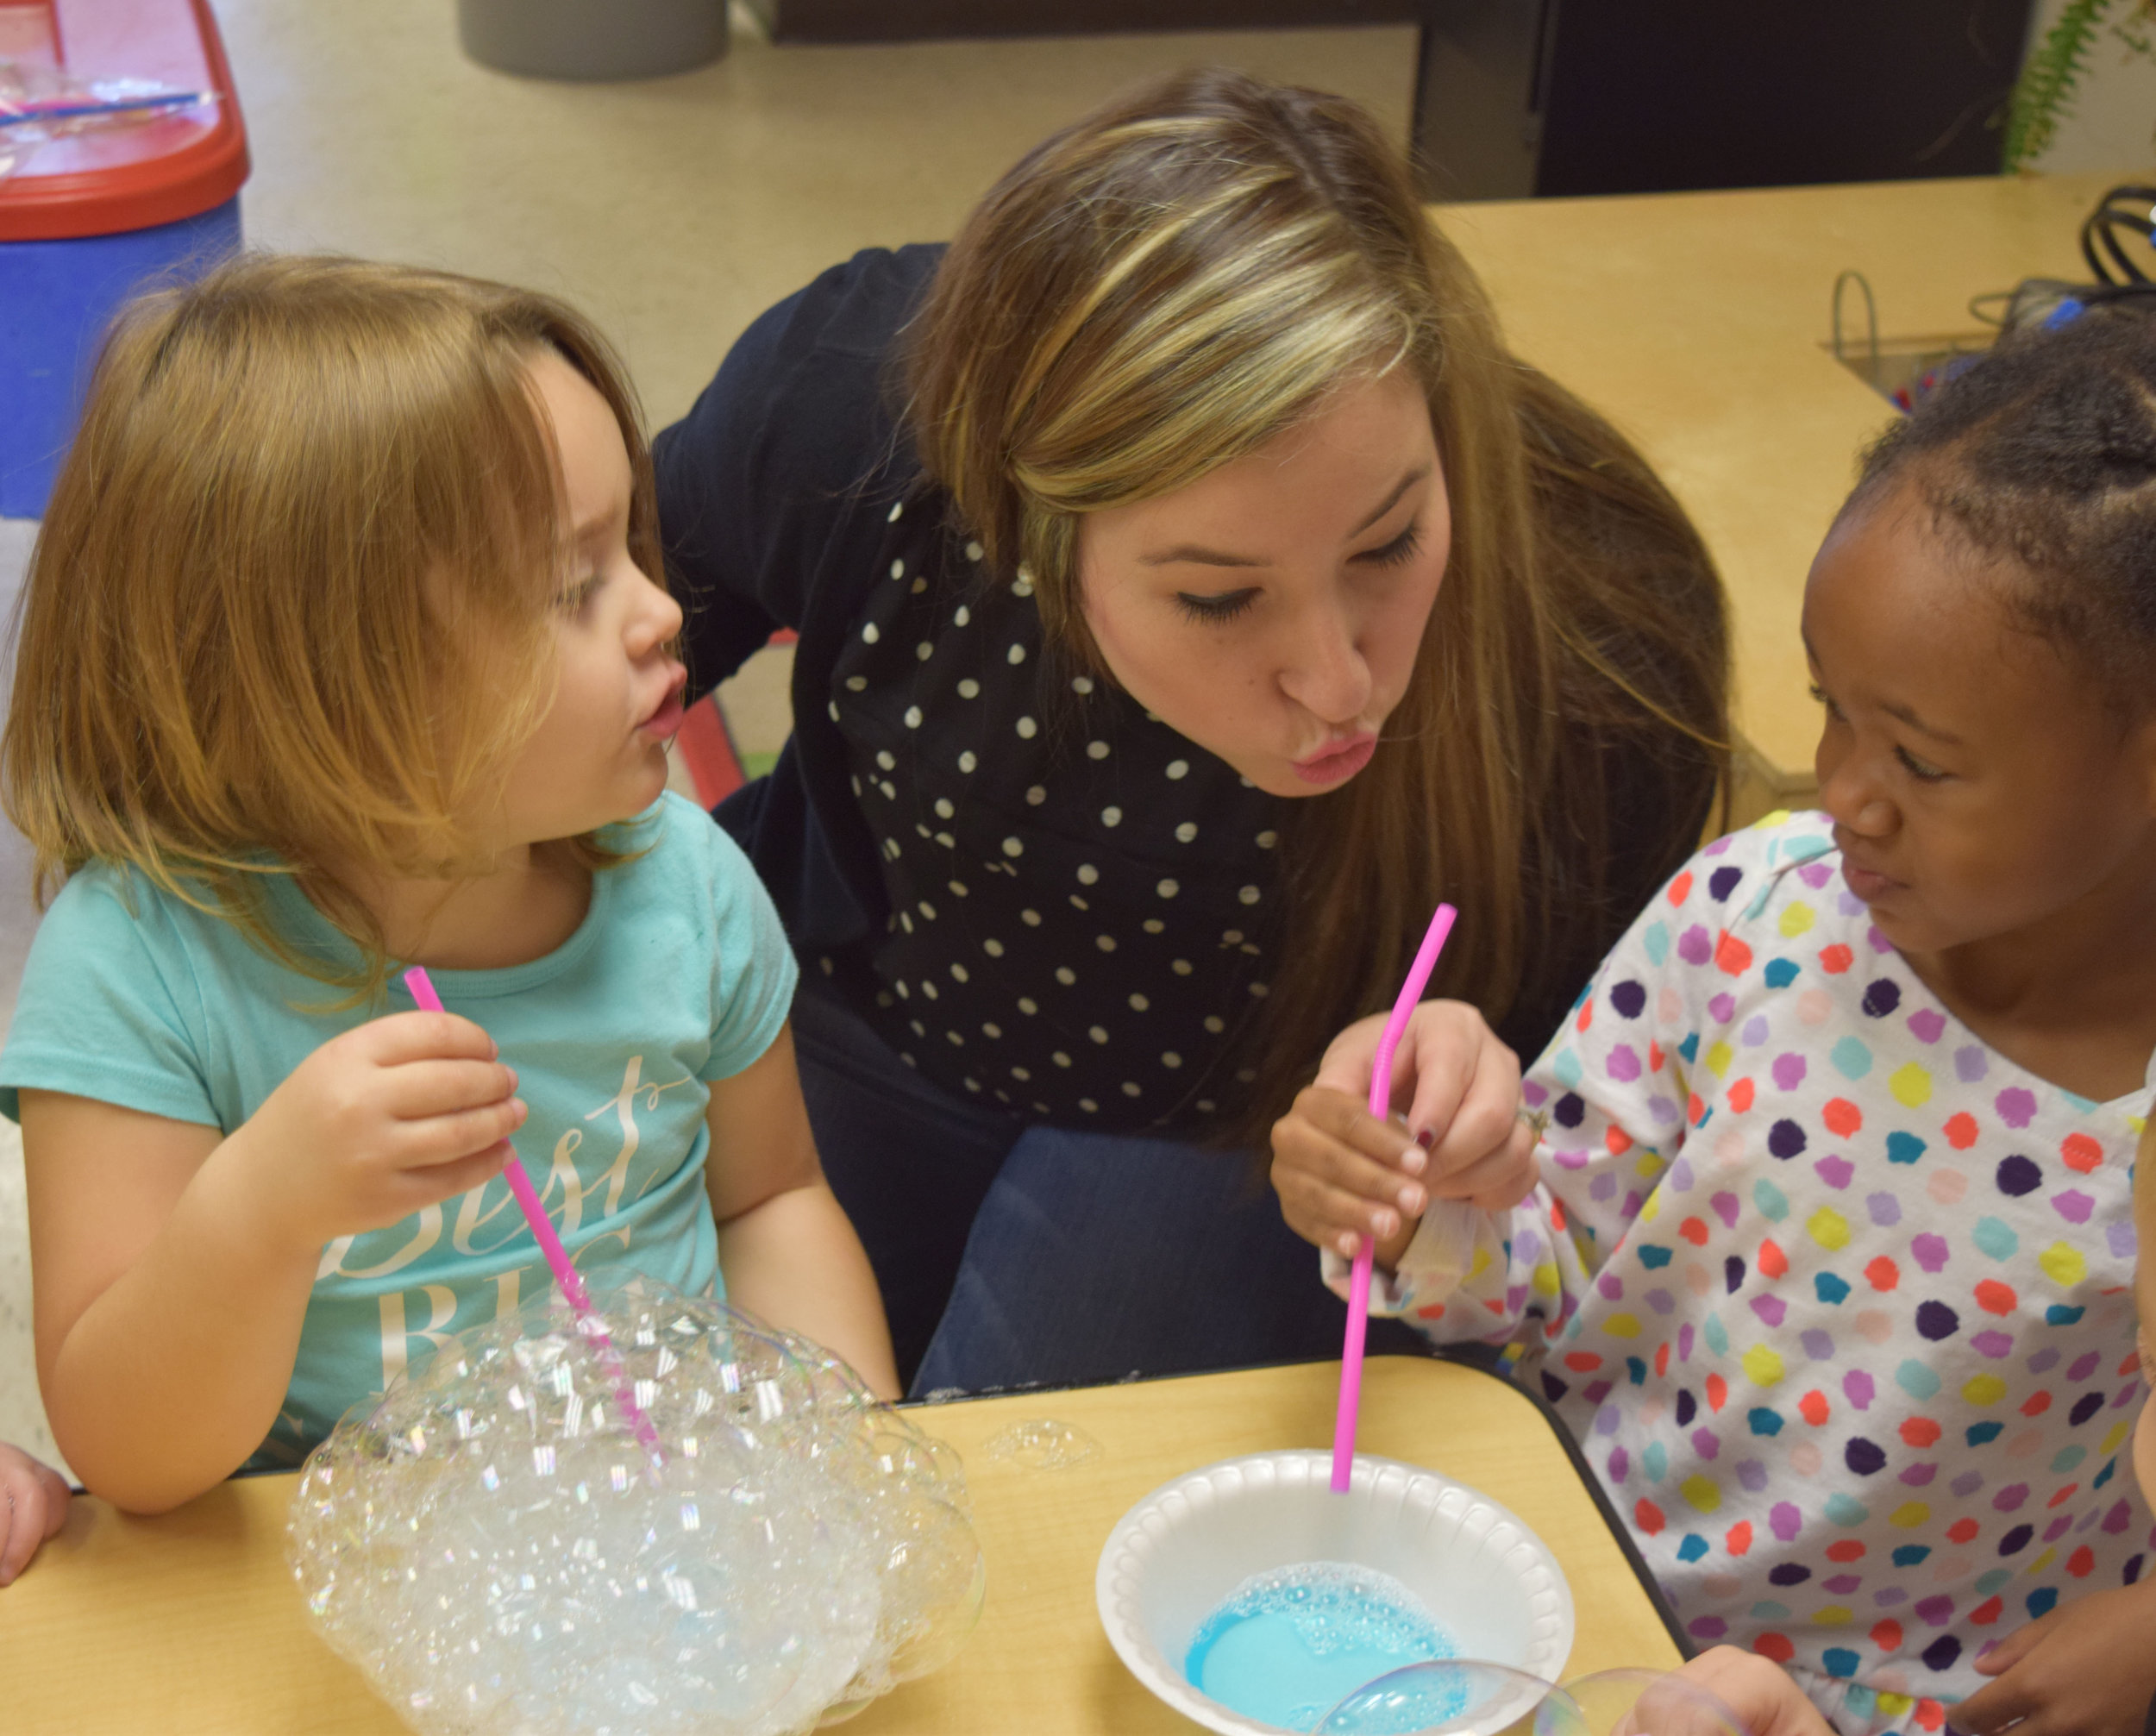 Volunteer Melissa Gamboa shows kids how to blow bubbles at the Children's Learning Center in Walled Lake.